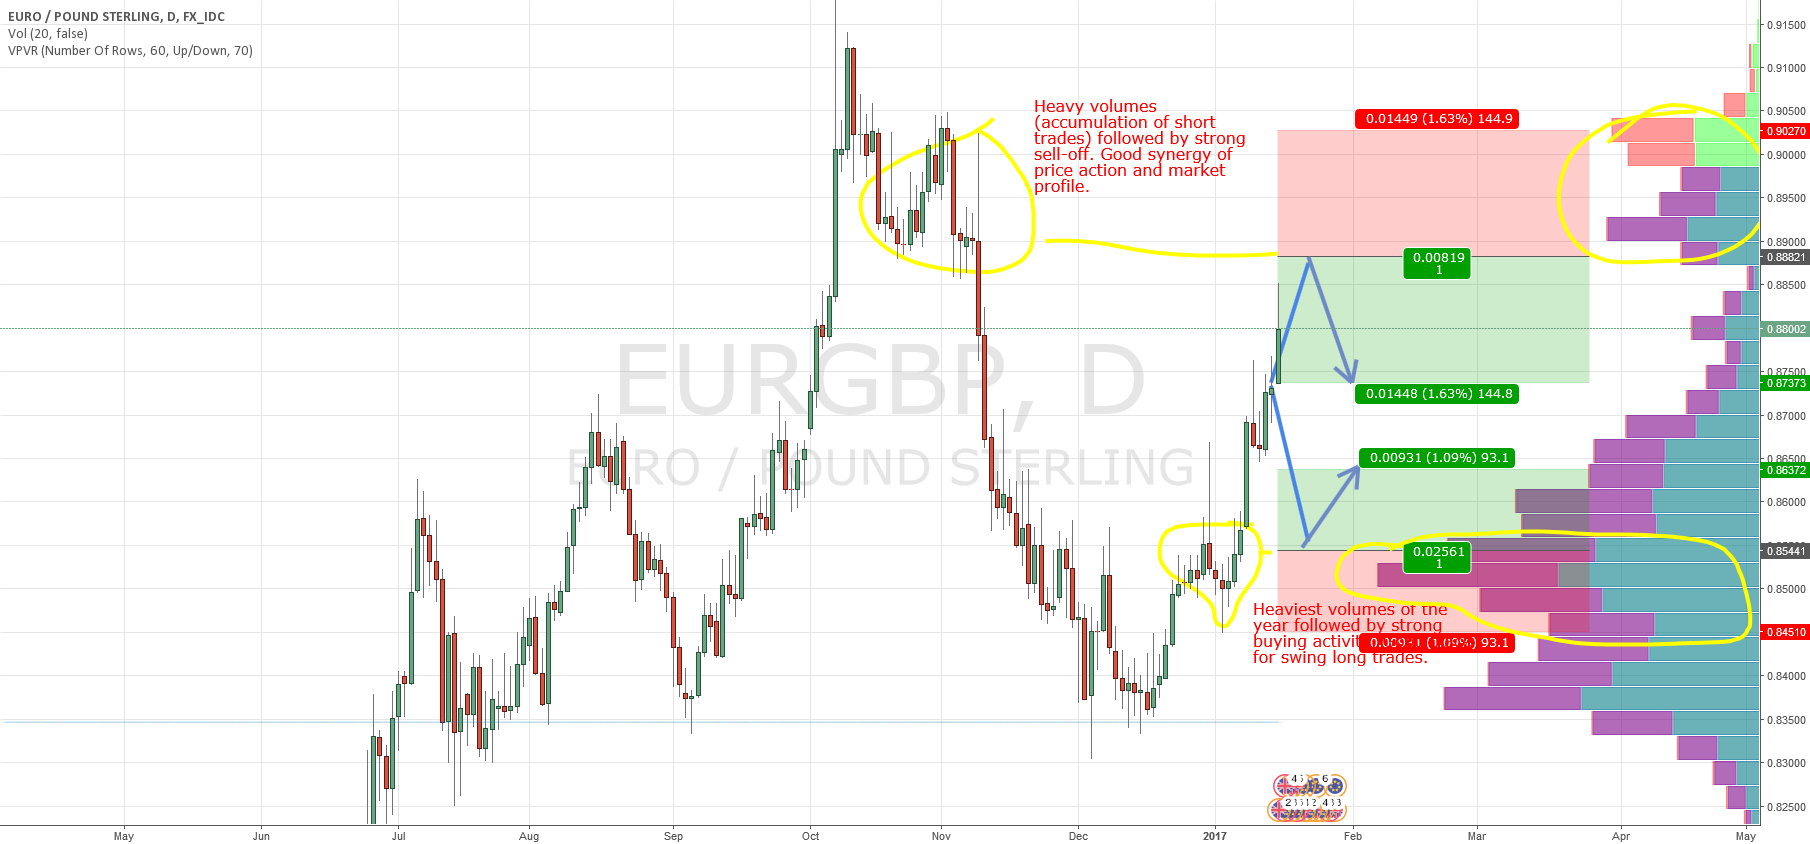 EUR//GBP swings based on Market Profile and Price Action